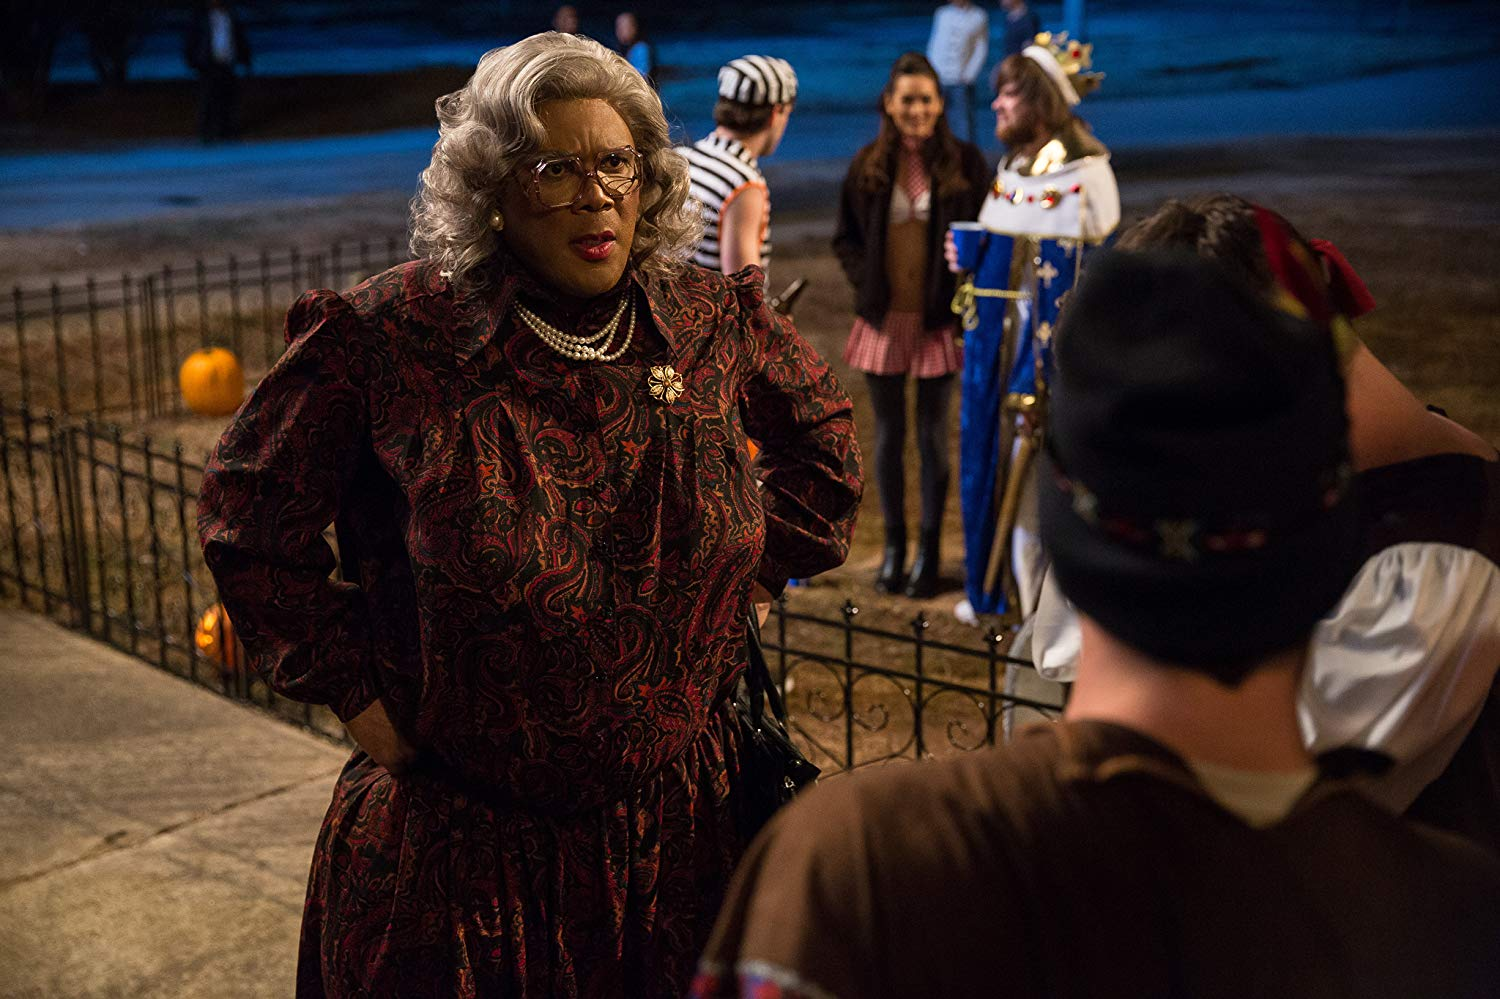 Tyler Perry as Madea arrives at the fraternity party in Boo! A Madea Halloween (2016)